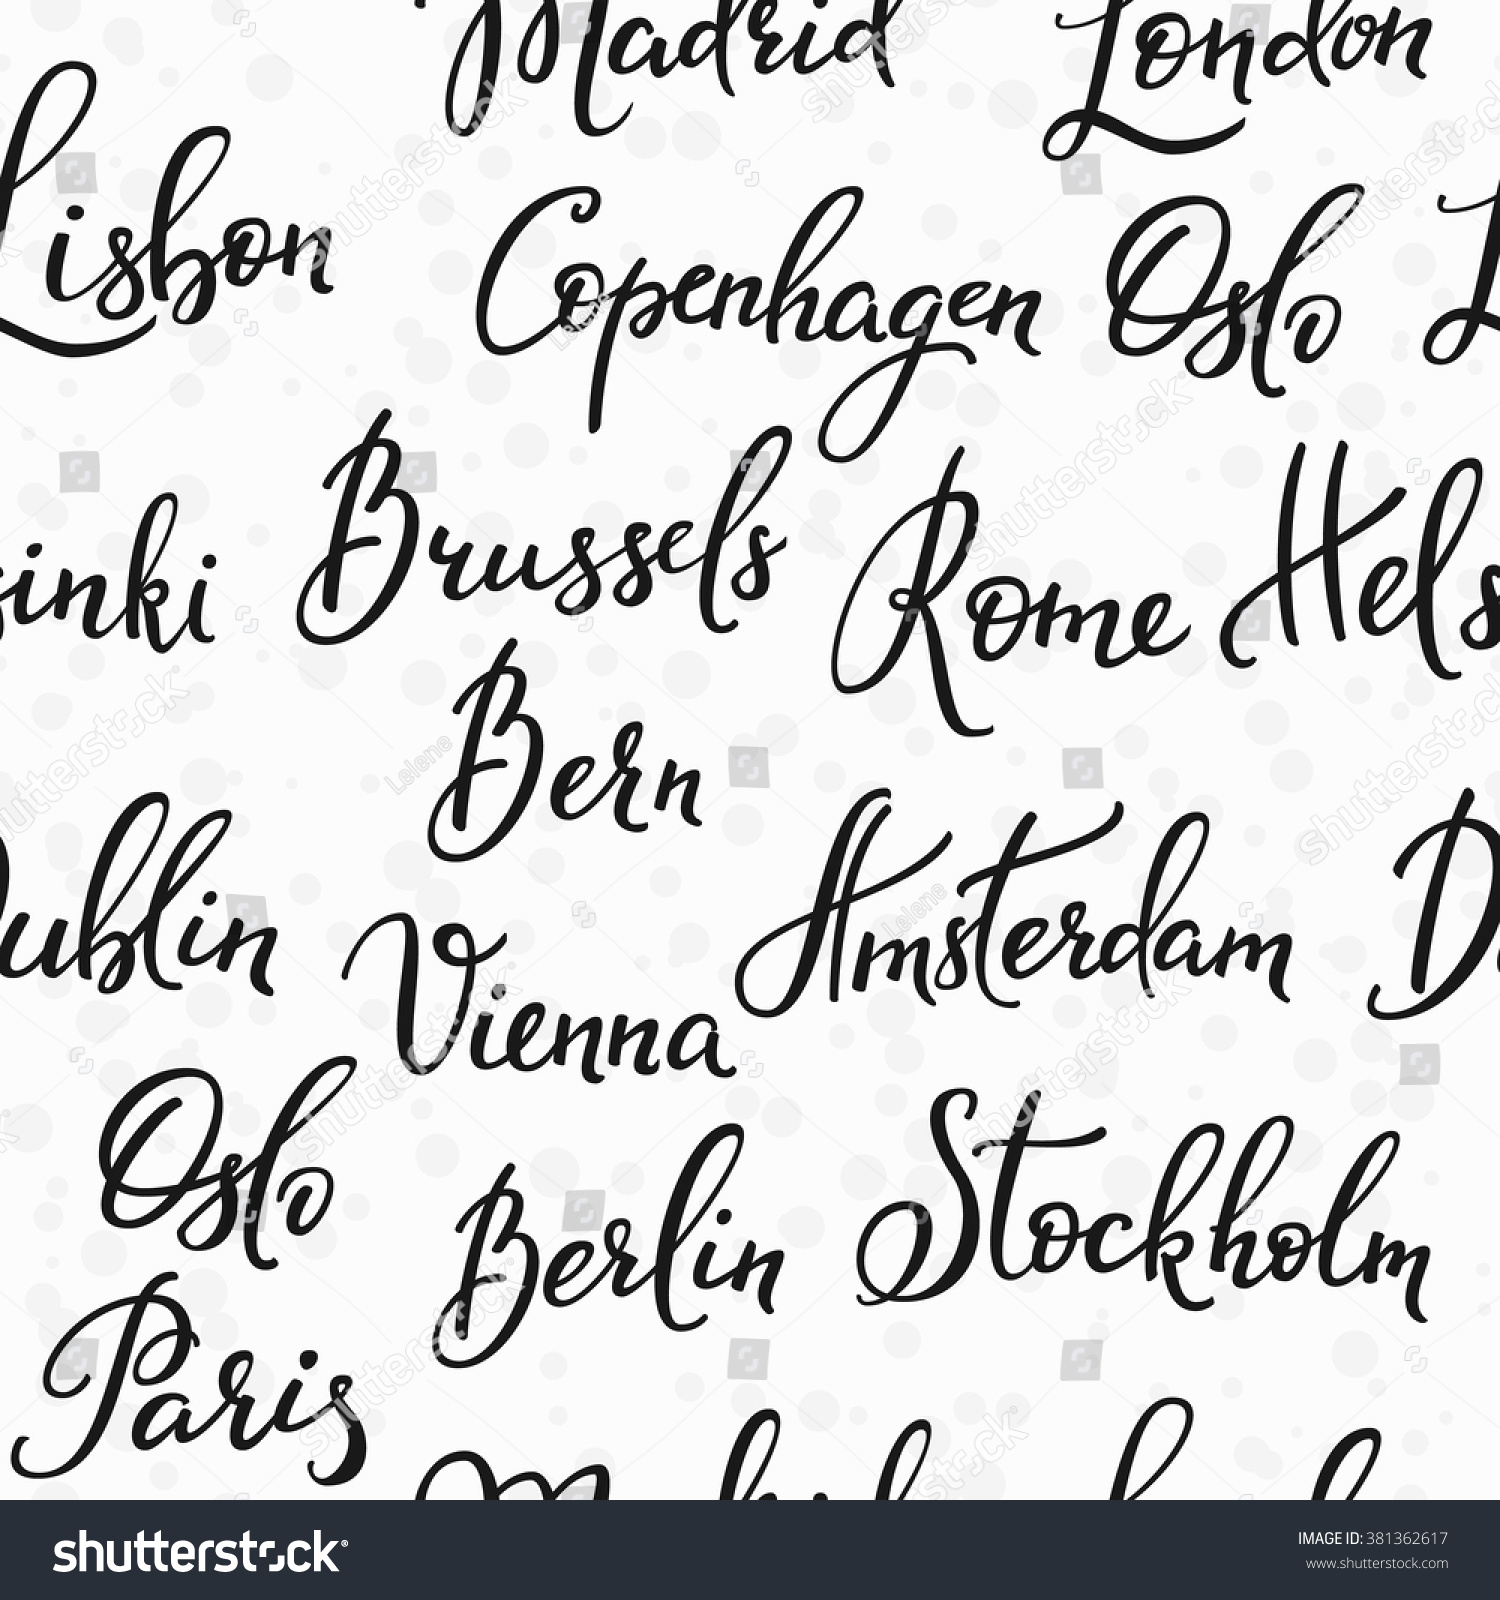 Lettering seamless pattern europe capitals names image